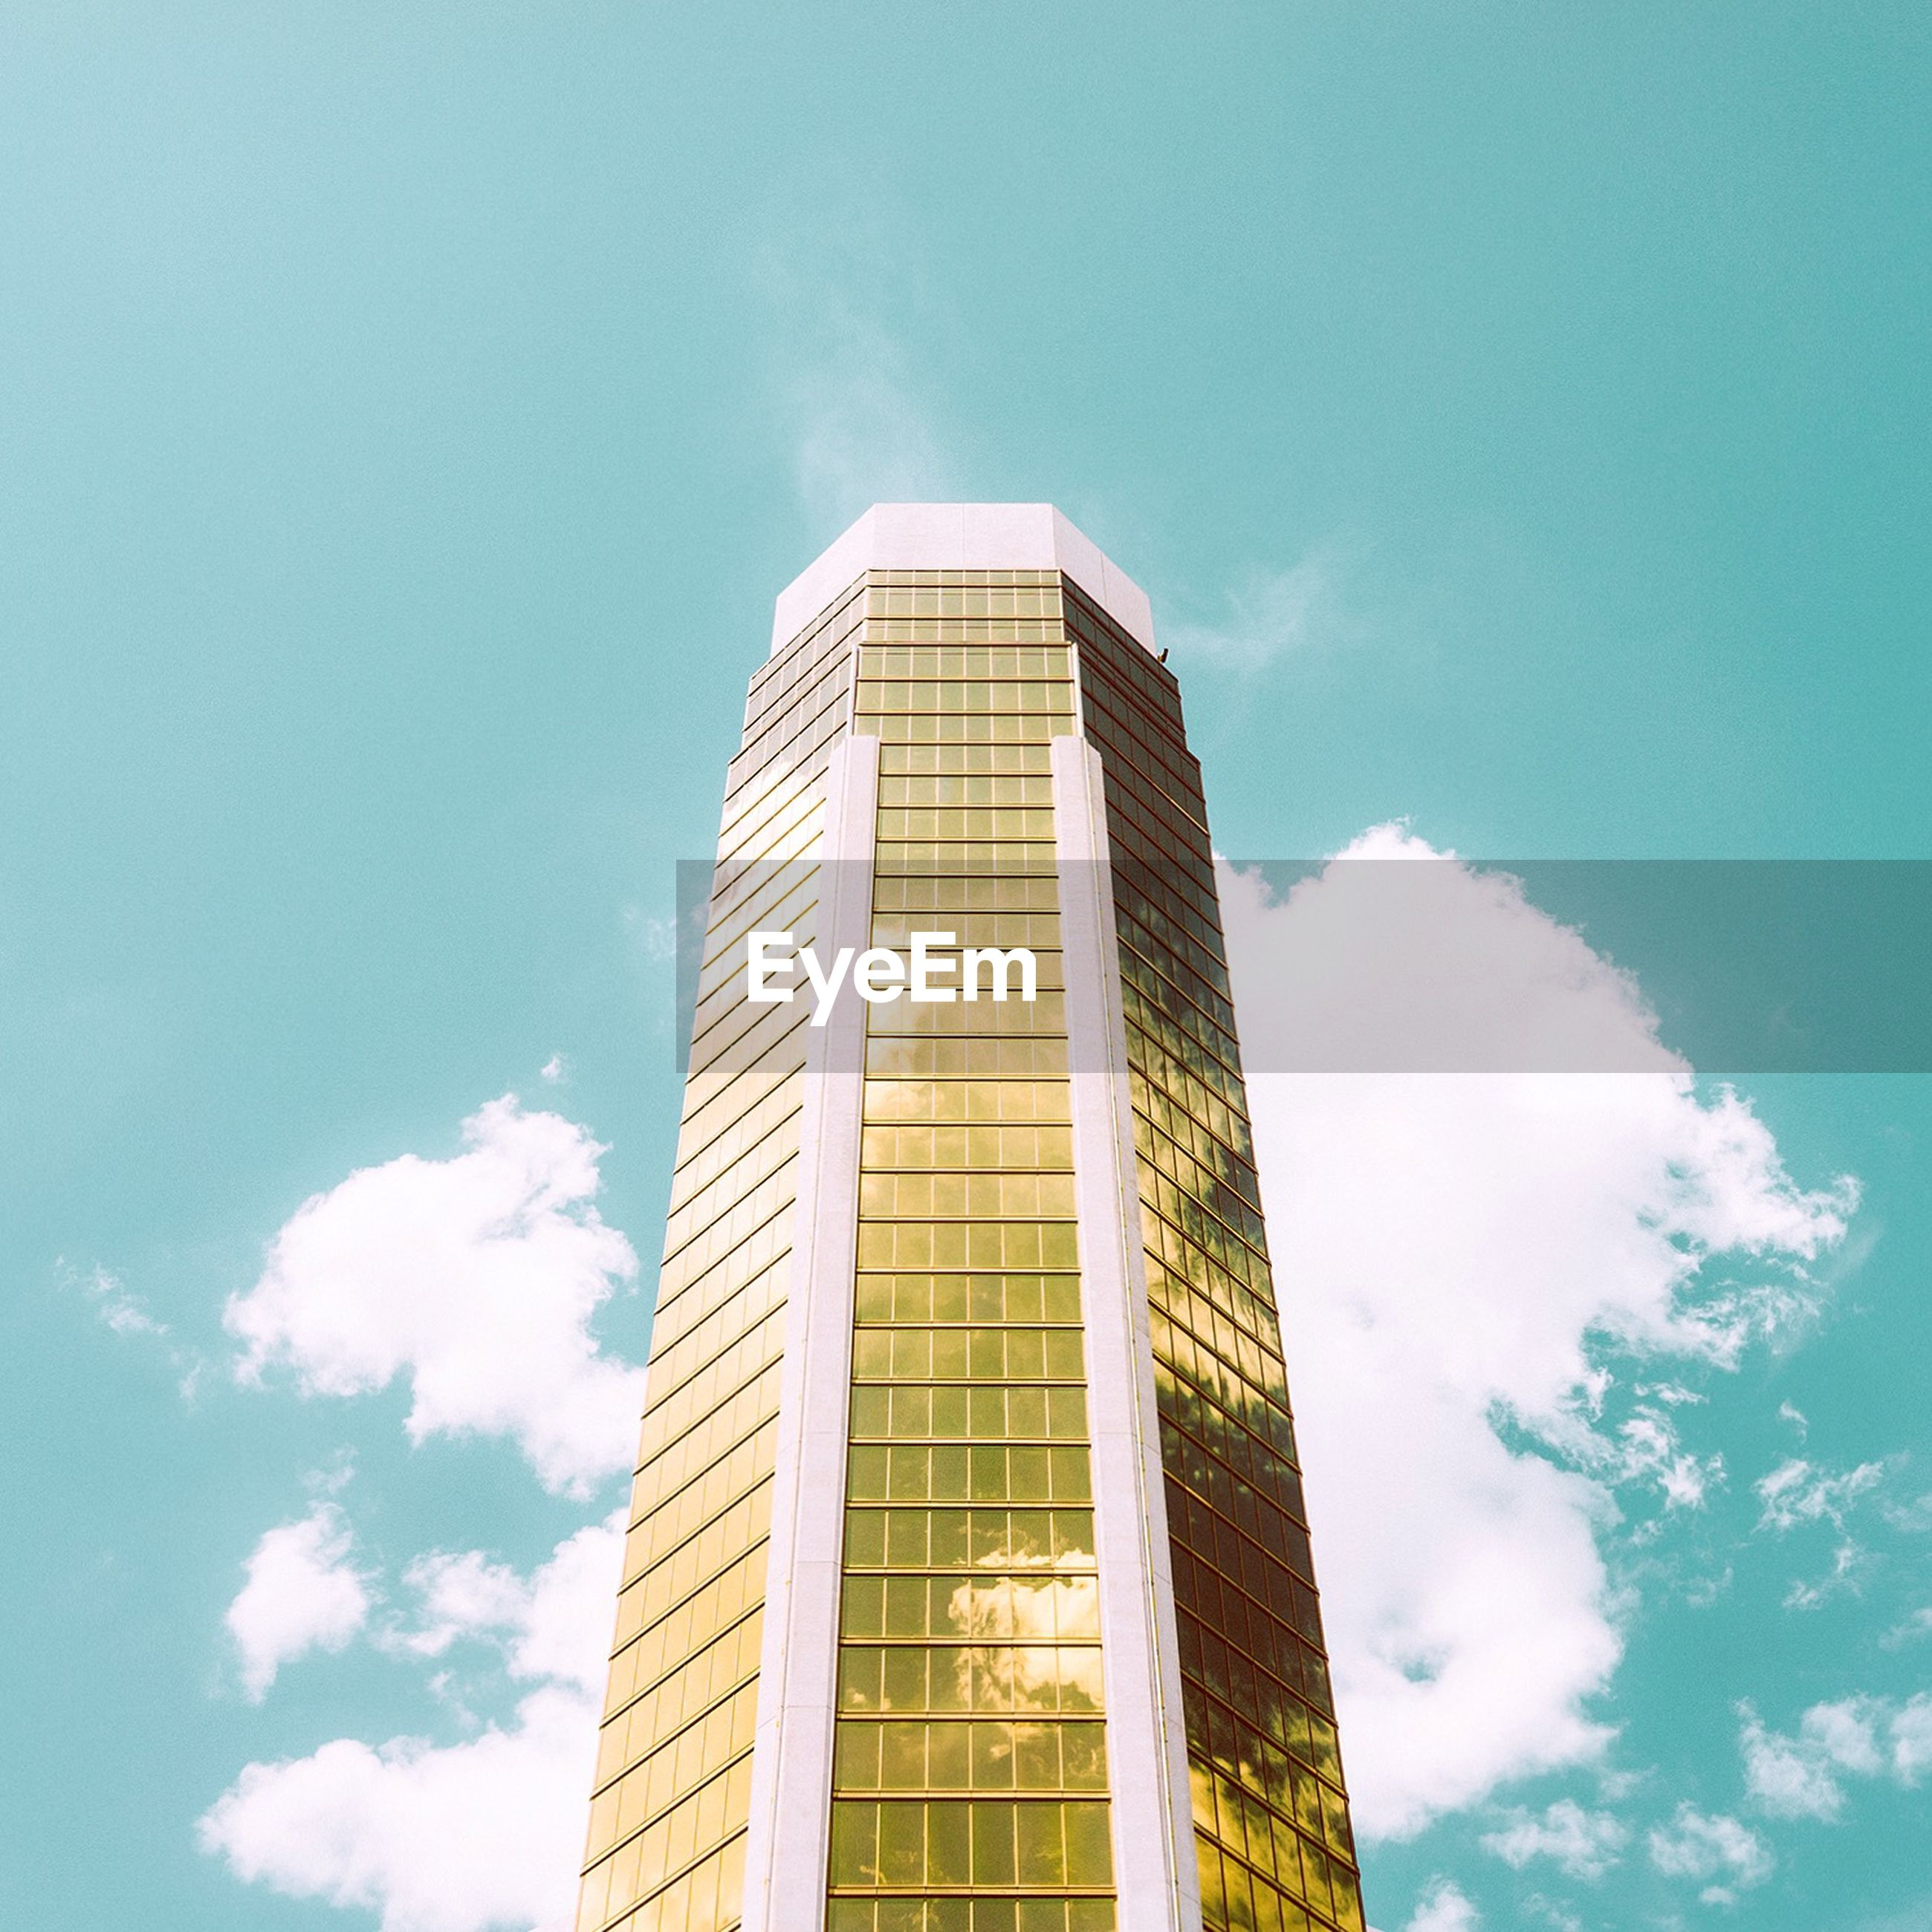 architecture, low angle view, building exterior, built structure, sky, modern, tall - high, office building, tower, city, building, skyscraper, blue, cloud, cloud - sky, tall, glass - material, day, window, outdoors